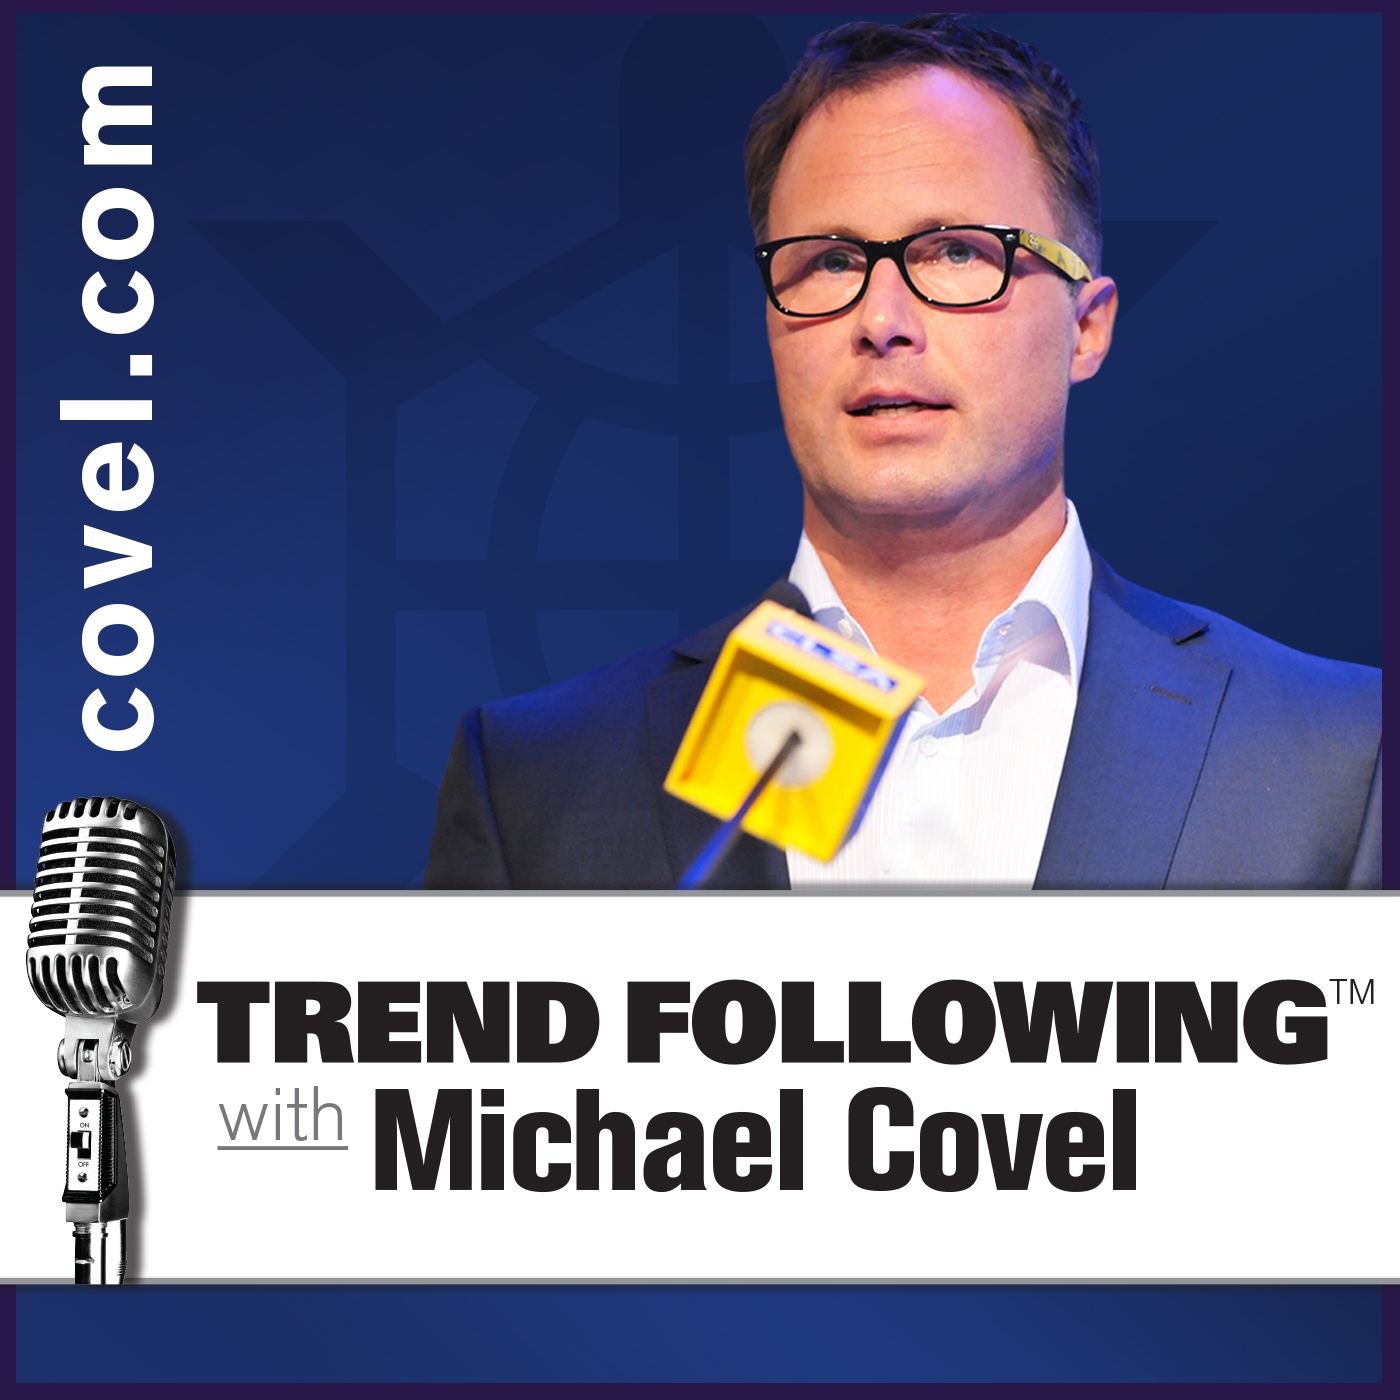 Ep. 501: Roger Housden Interview with Michael Covel on Trend Following Radio